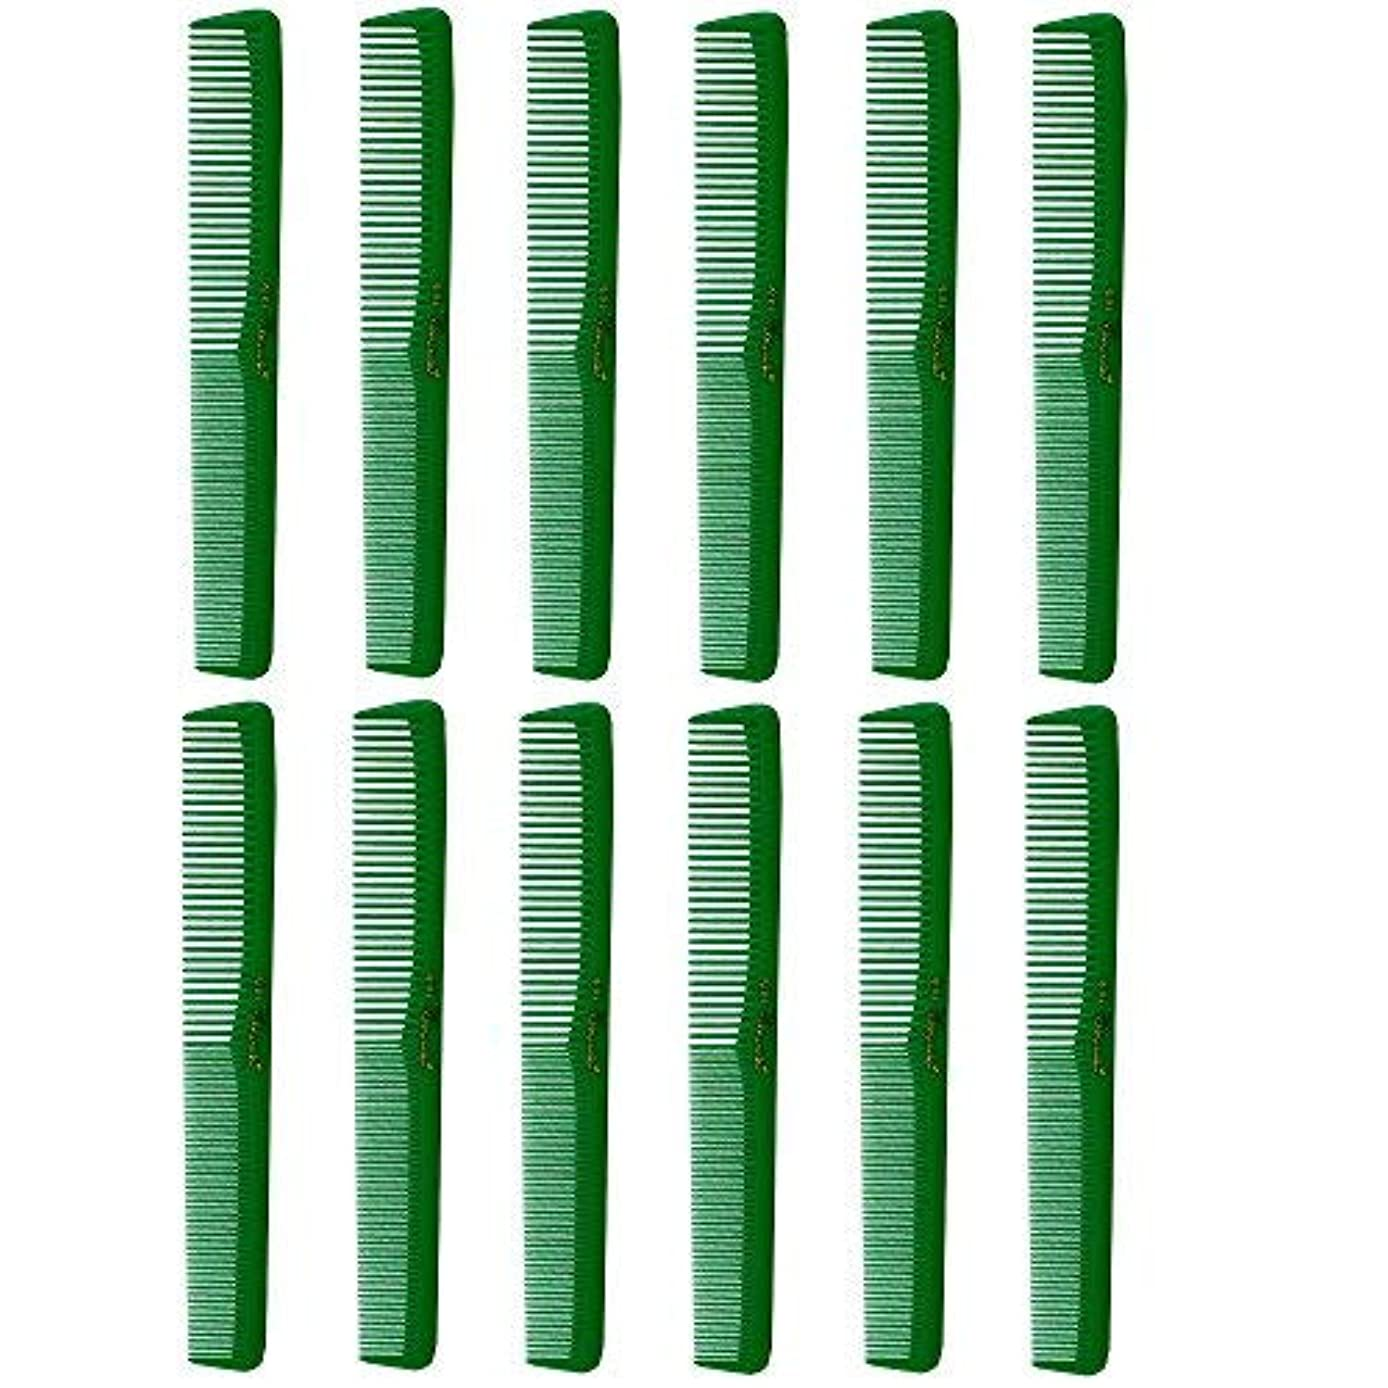 憤る見捨てられたカテナBarber Beauty Hair Cleopatra 400 All Purpose Combs (12 Pack) 12 x SB-C400-GREEN [並行輸入品]